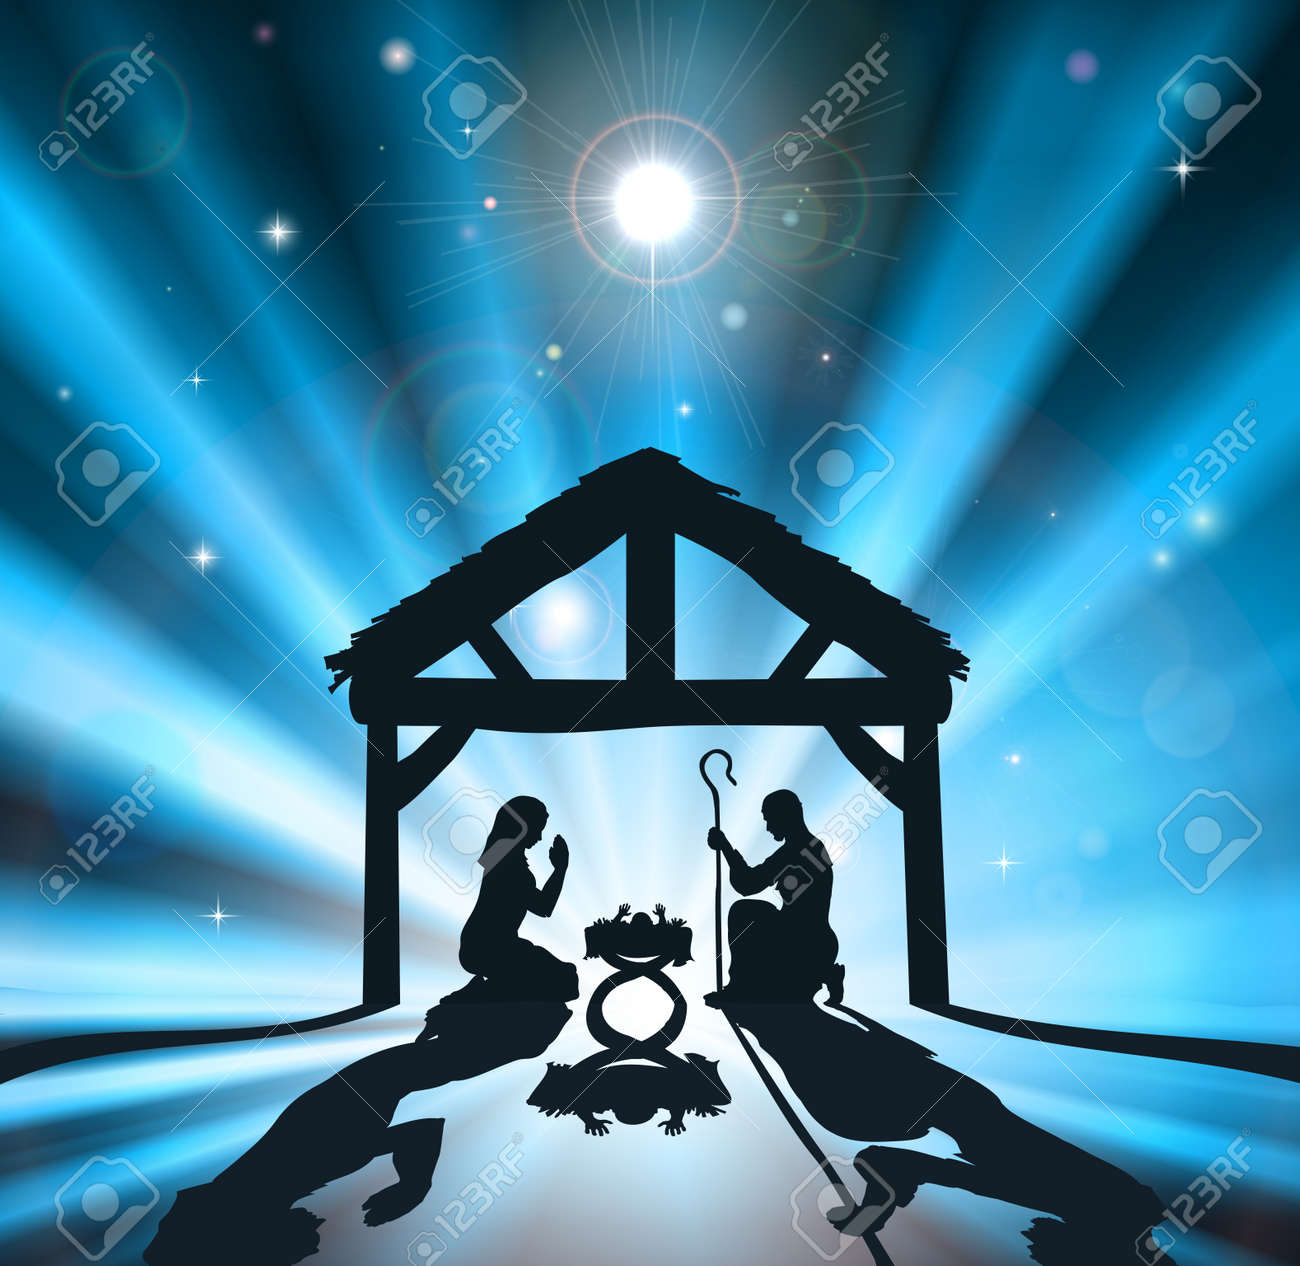 Christian Christmas nativity scene of baby Jesus in the manger with the virgin Mary and Joseph Stock Vector - 12346898